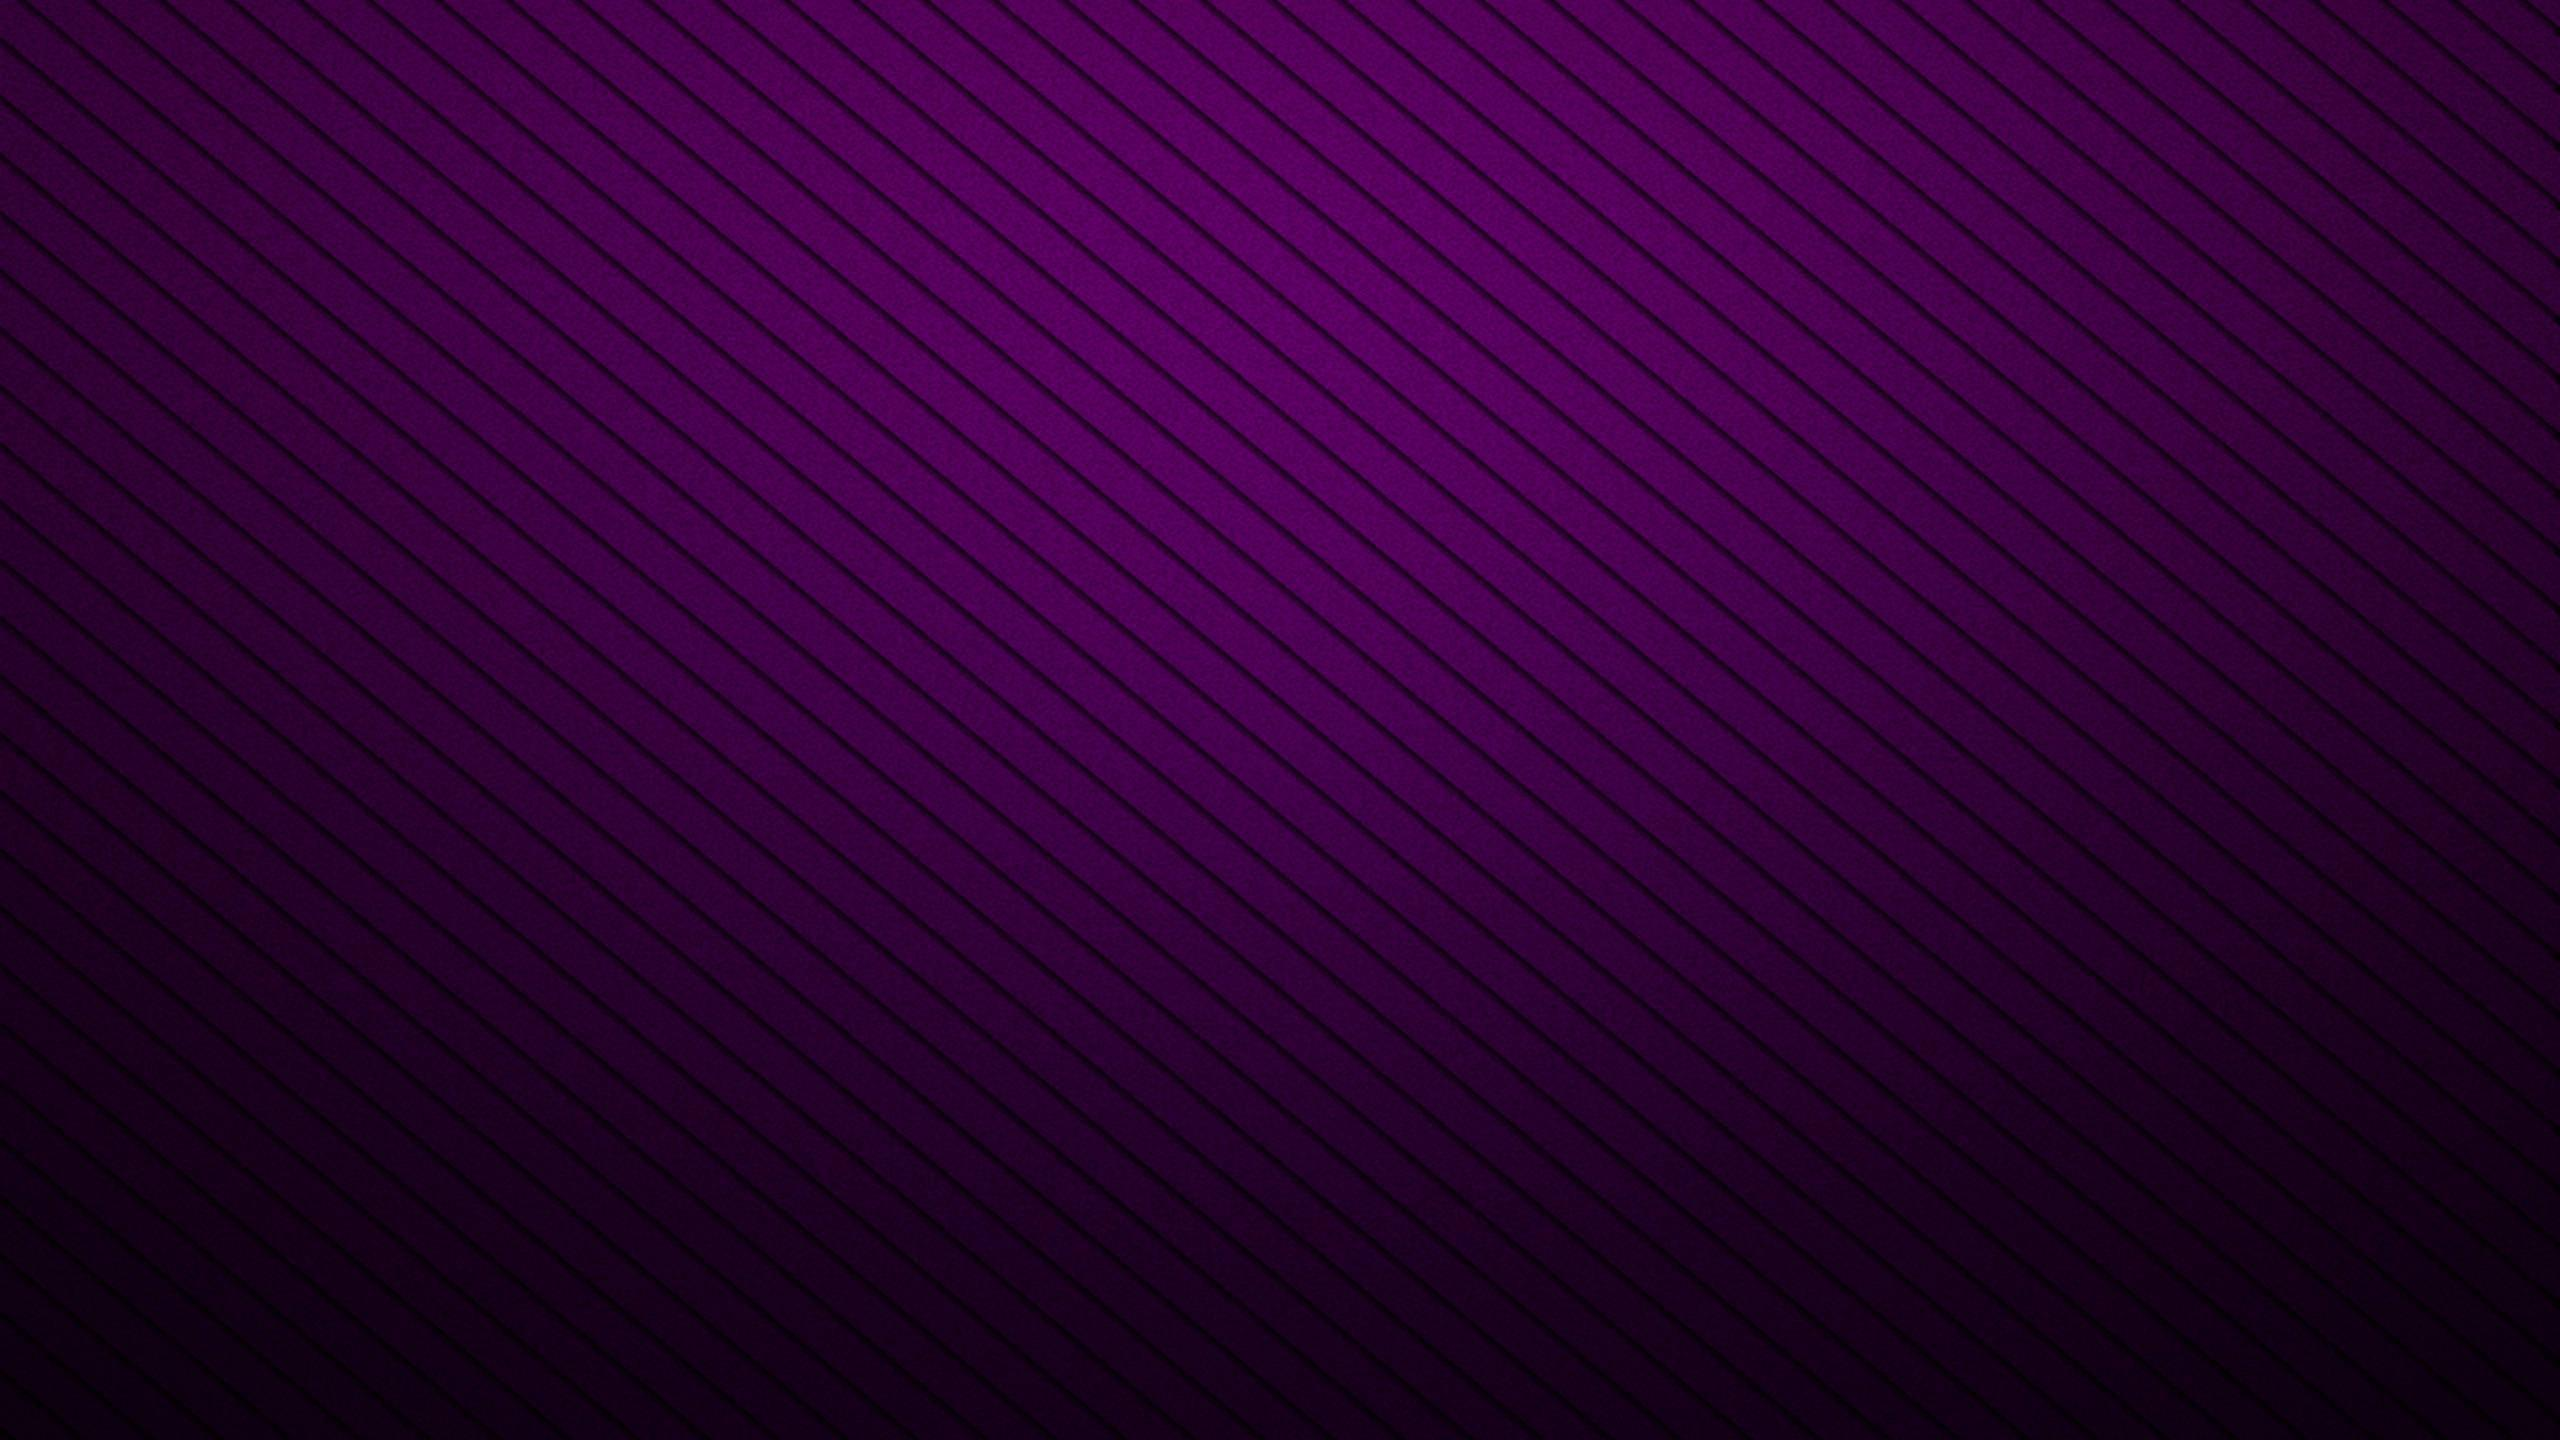 Purple And Black Wallpapers Top Free Purple And Black Backgrounds Wallpaperaccess